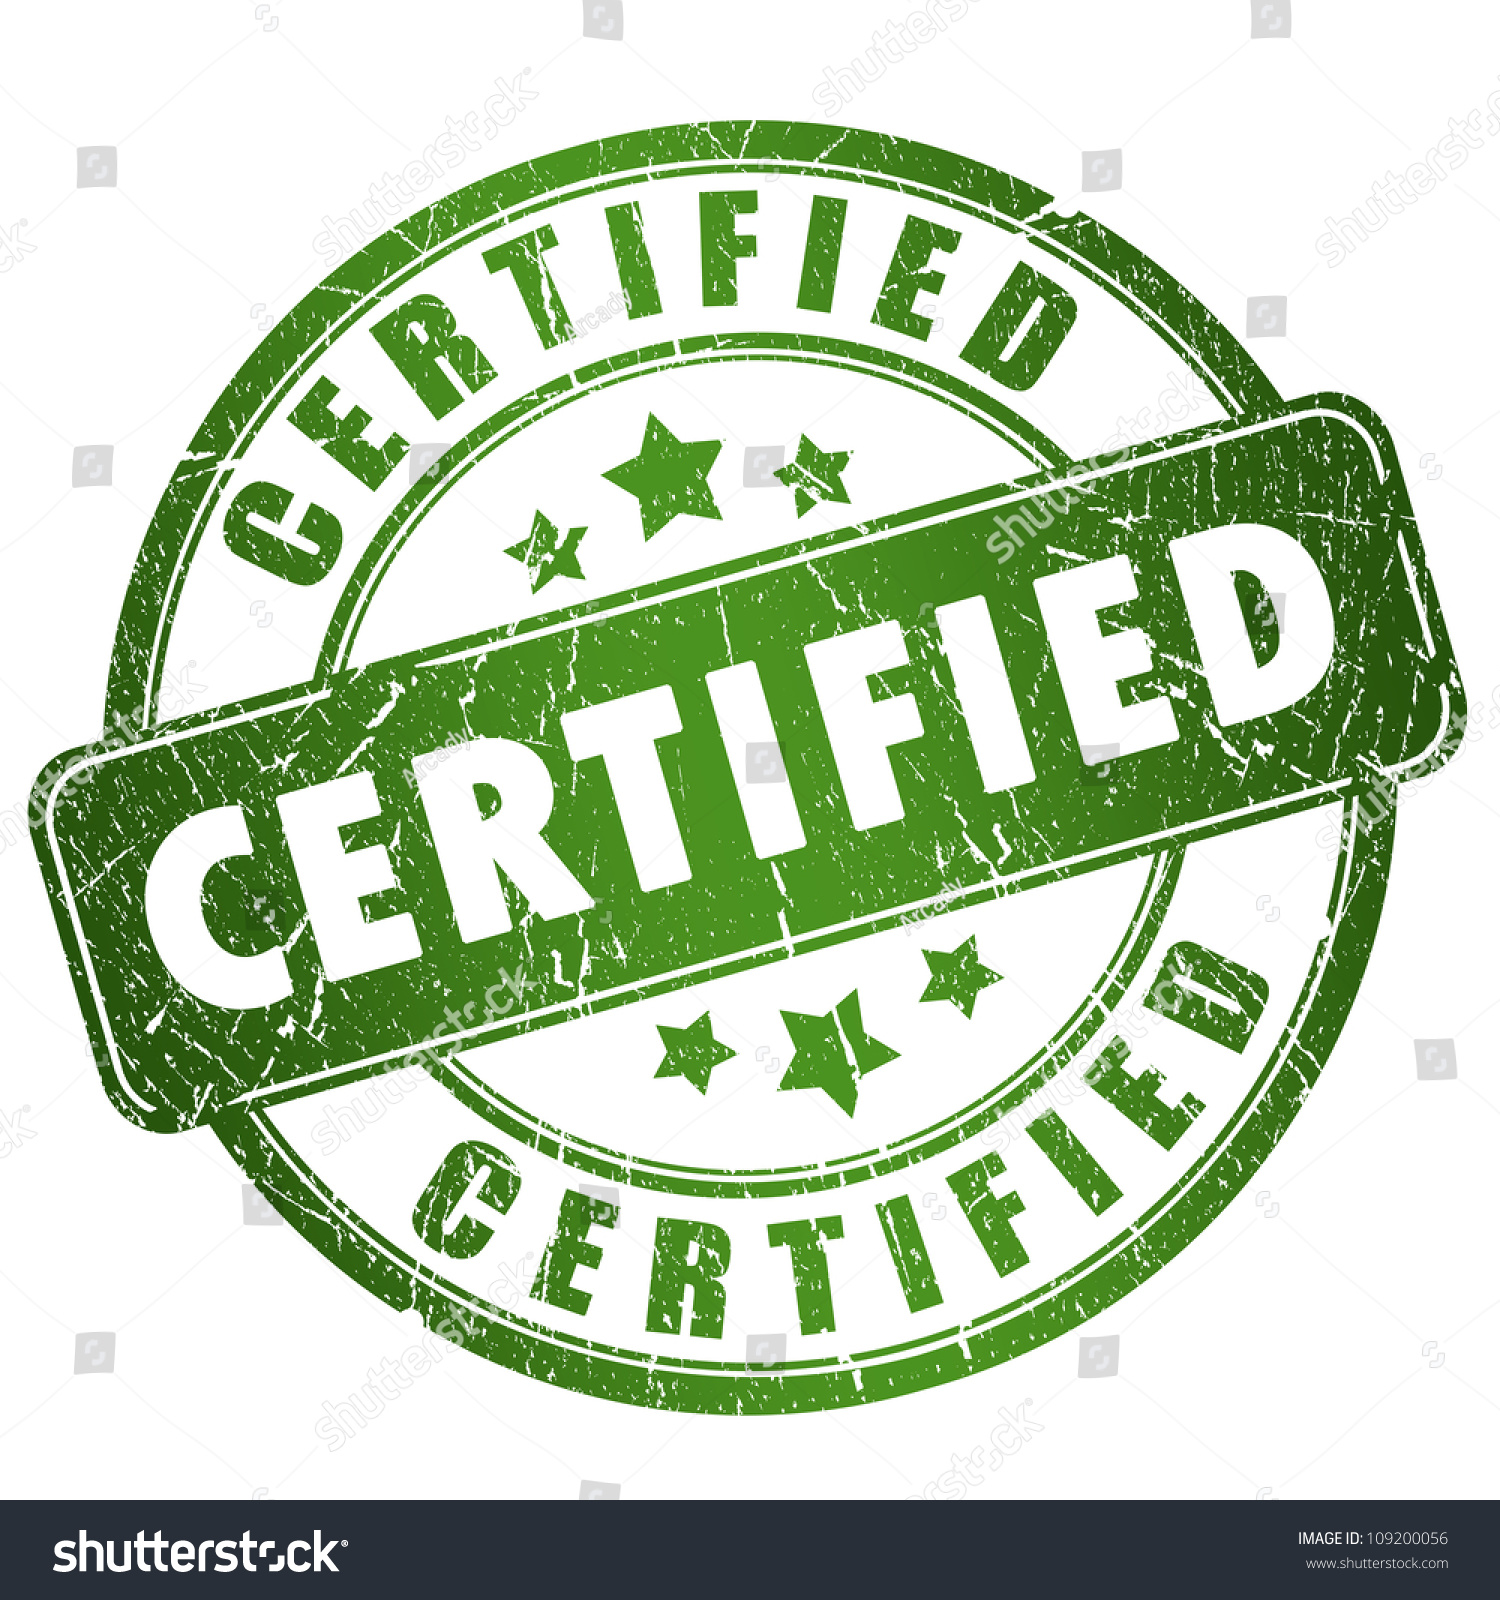 certifications/relevant coursework